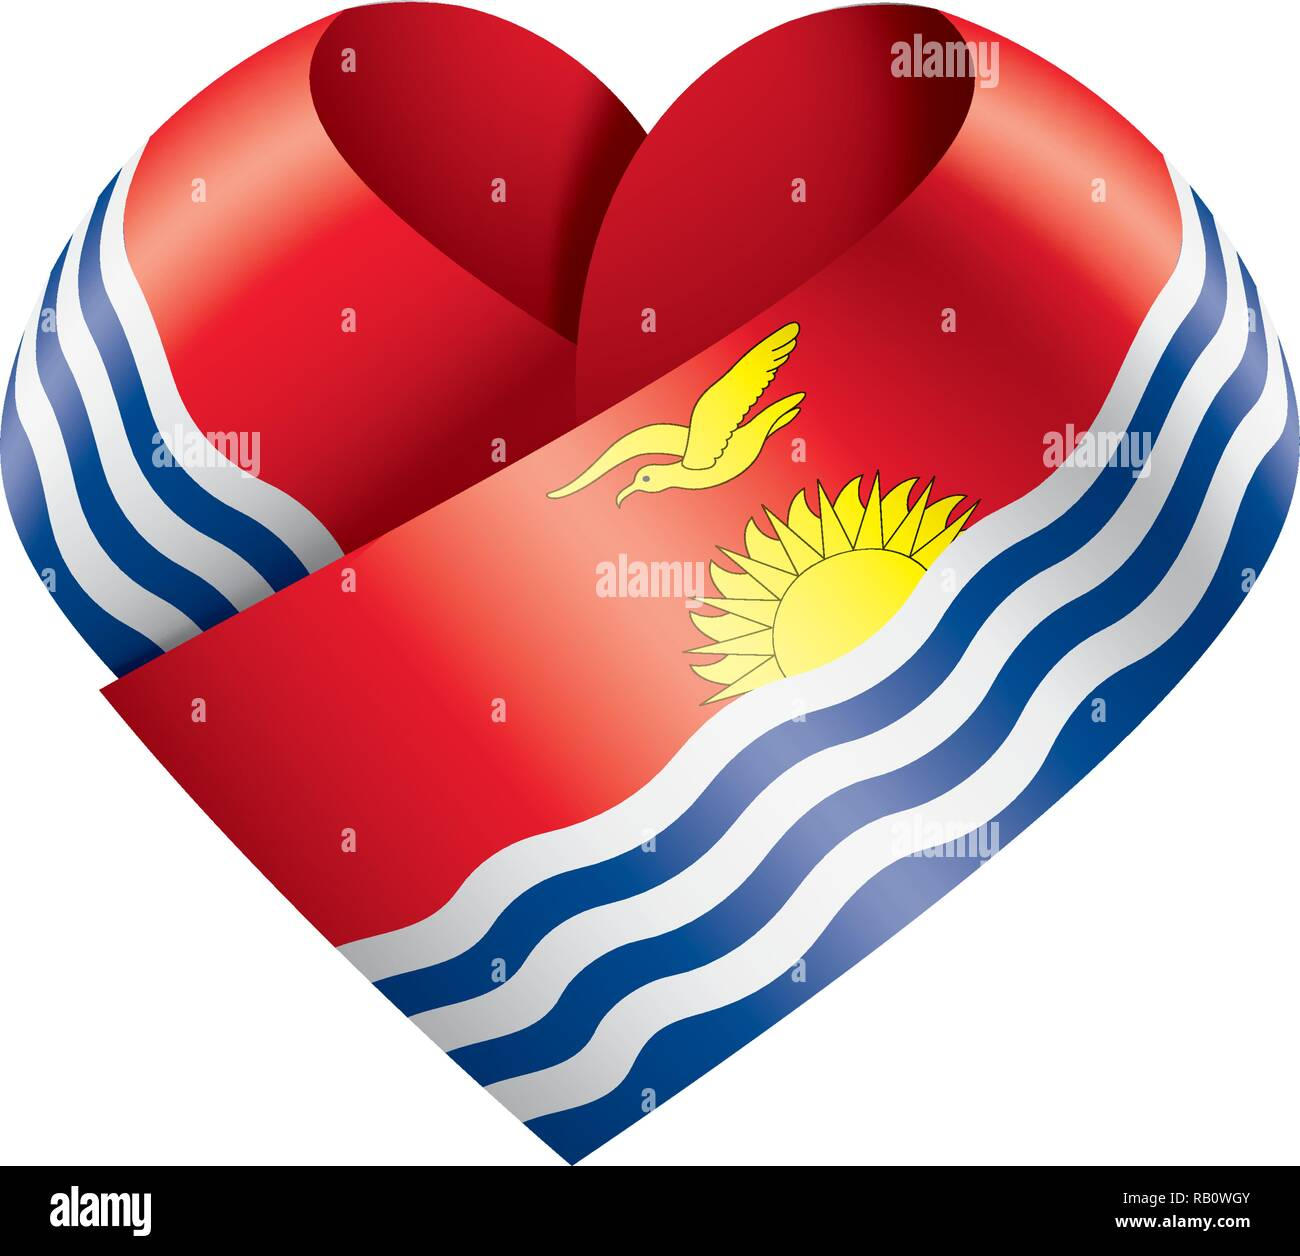 Kiribati flag, vector illustration on a white background - Stock Image